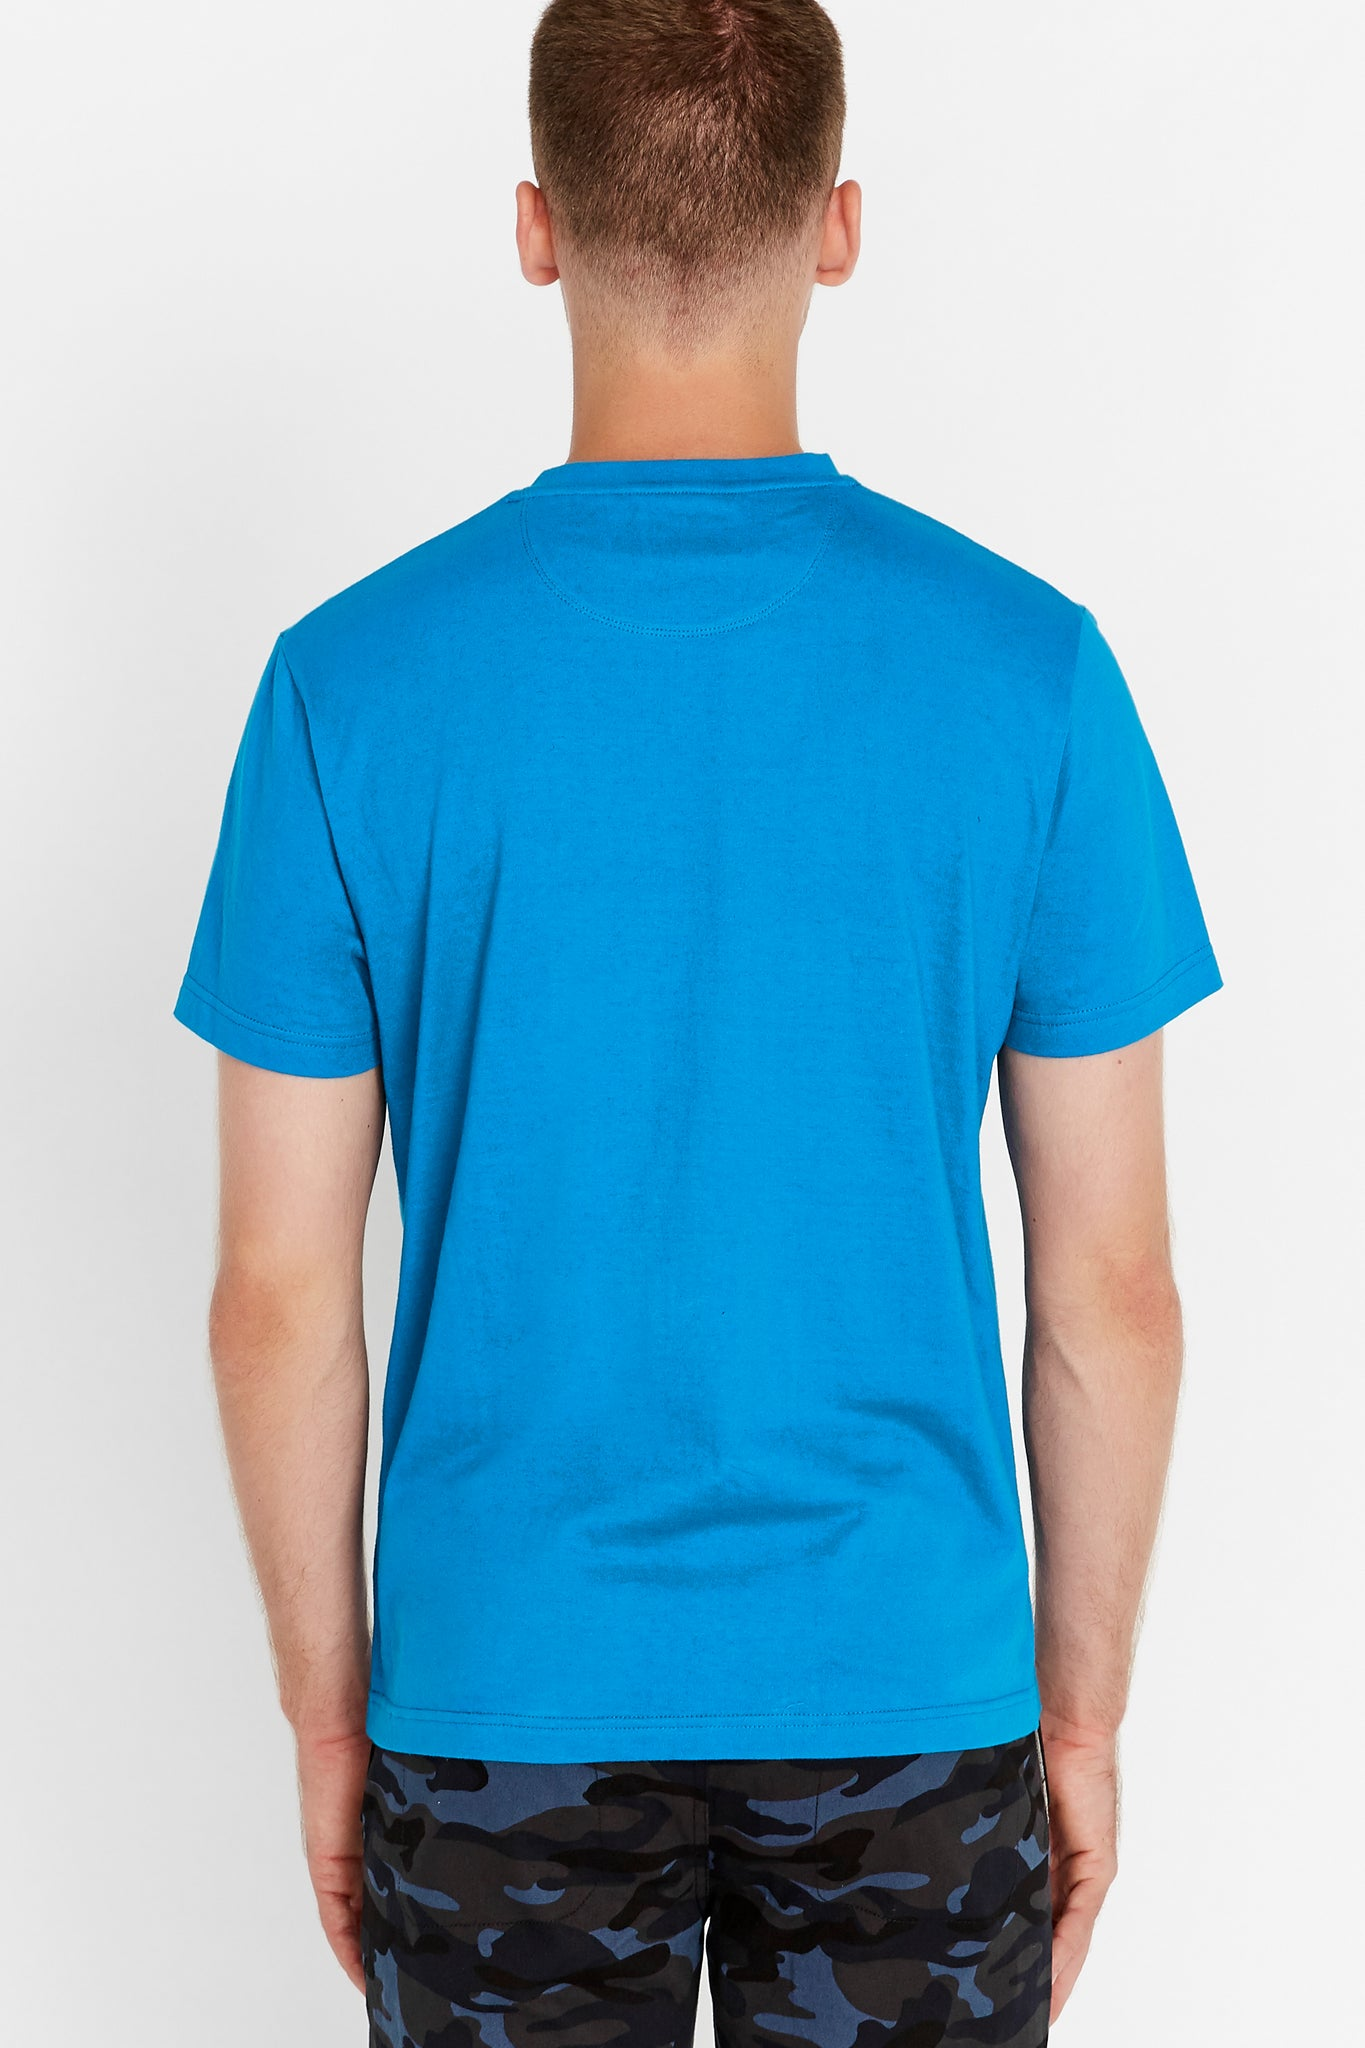 Back view of men wearing a royal blue short sleeve crew T-shirt